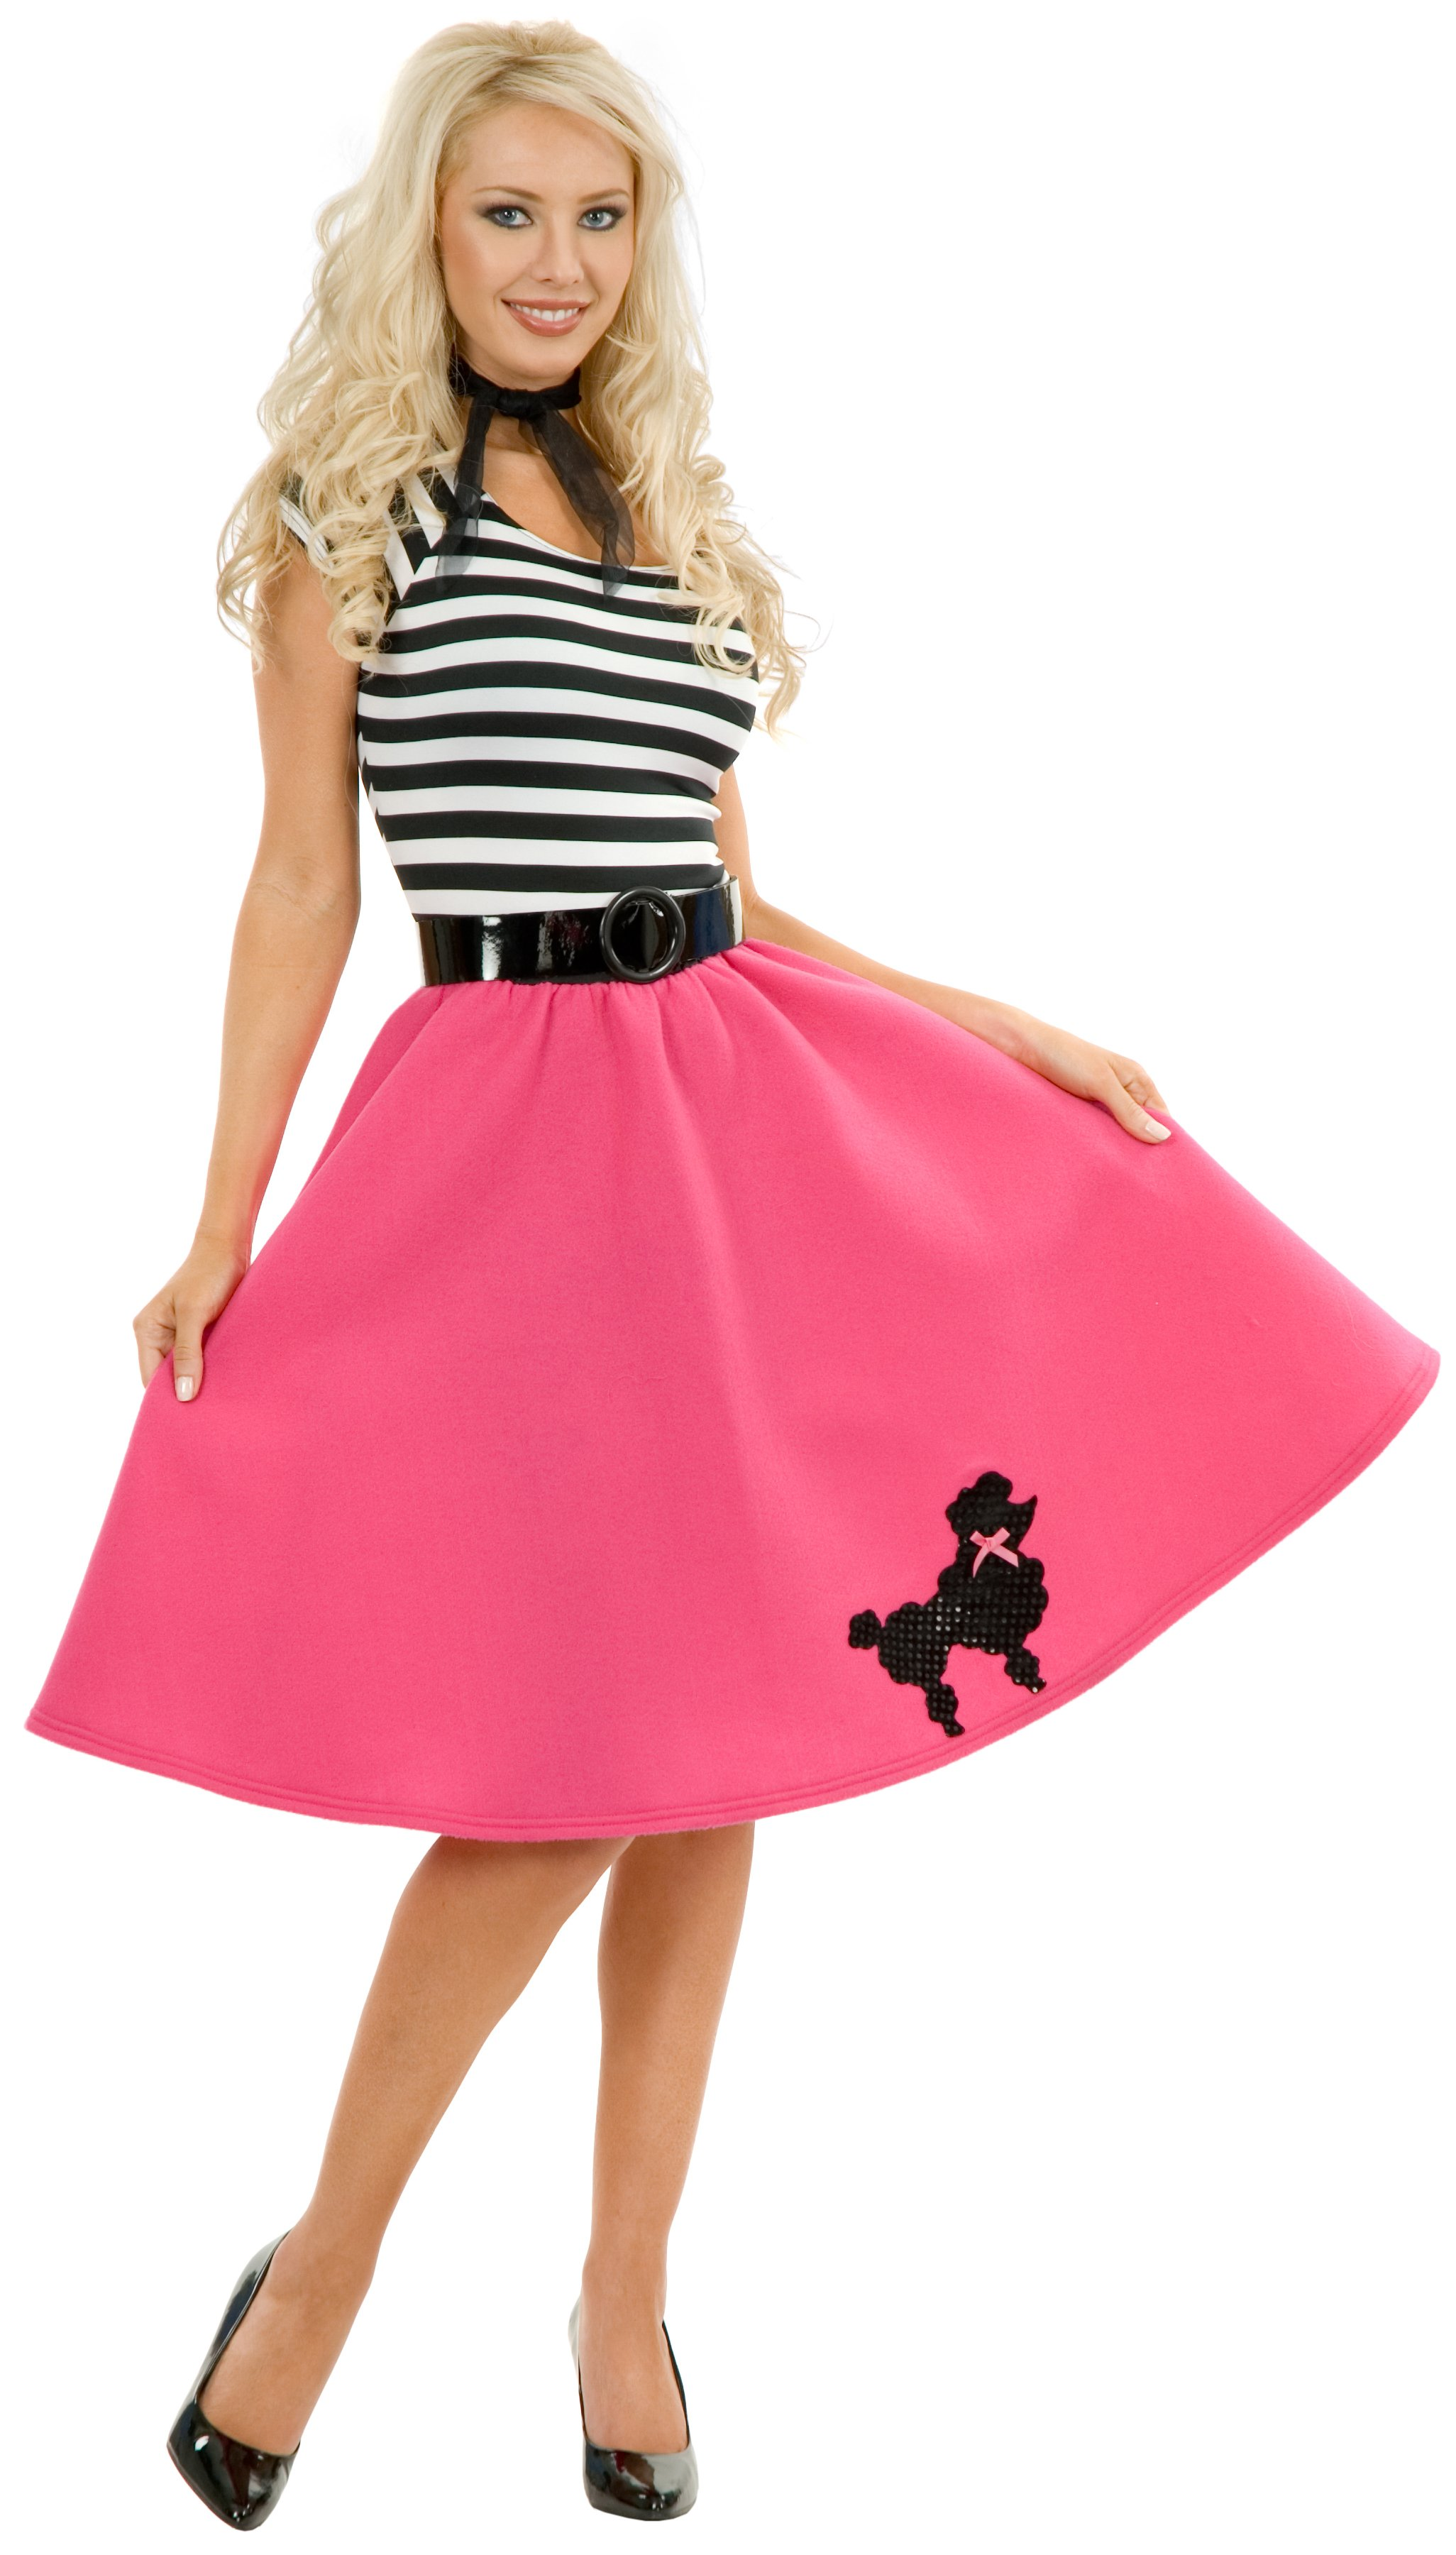 Poodle Skirt Plus Adult Costume